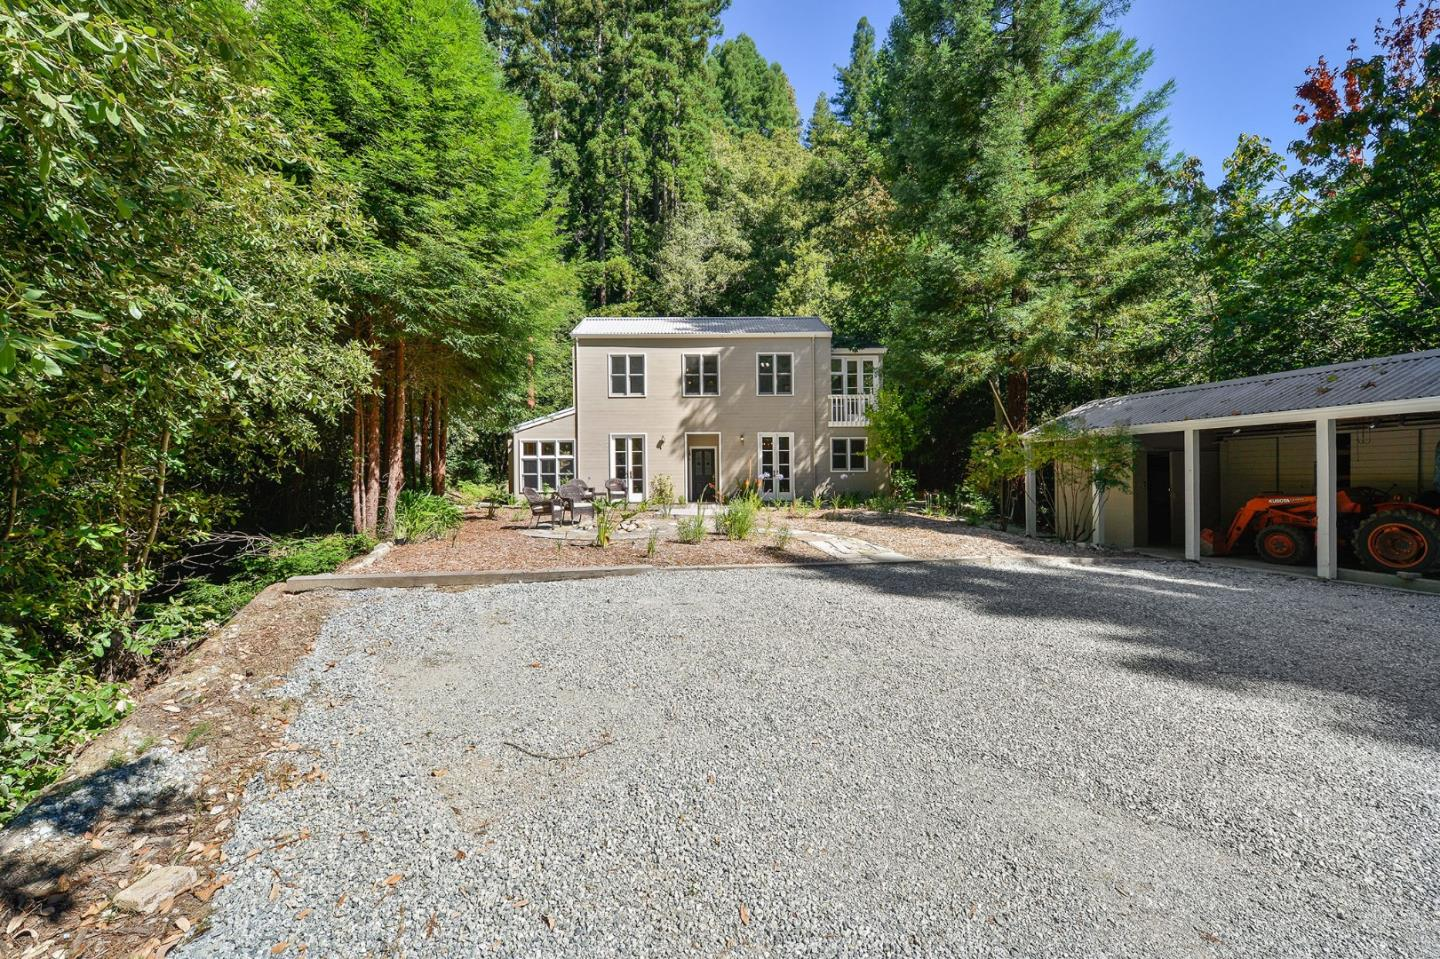 Beautiful custom built home on 10+- acres. Extremely private. Gorgeous redwoods all around. Beautiful built-ins and French doors in every room. Heated tile floors. Custom tile throughout. Office with separate entrance. Sunny, grassy yard with flowers. Creek on property.